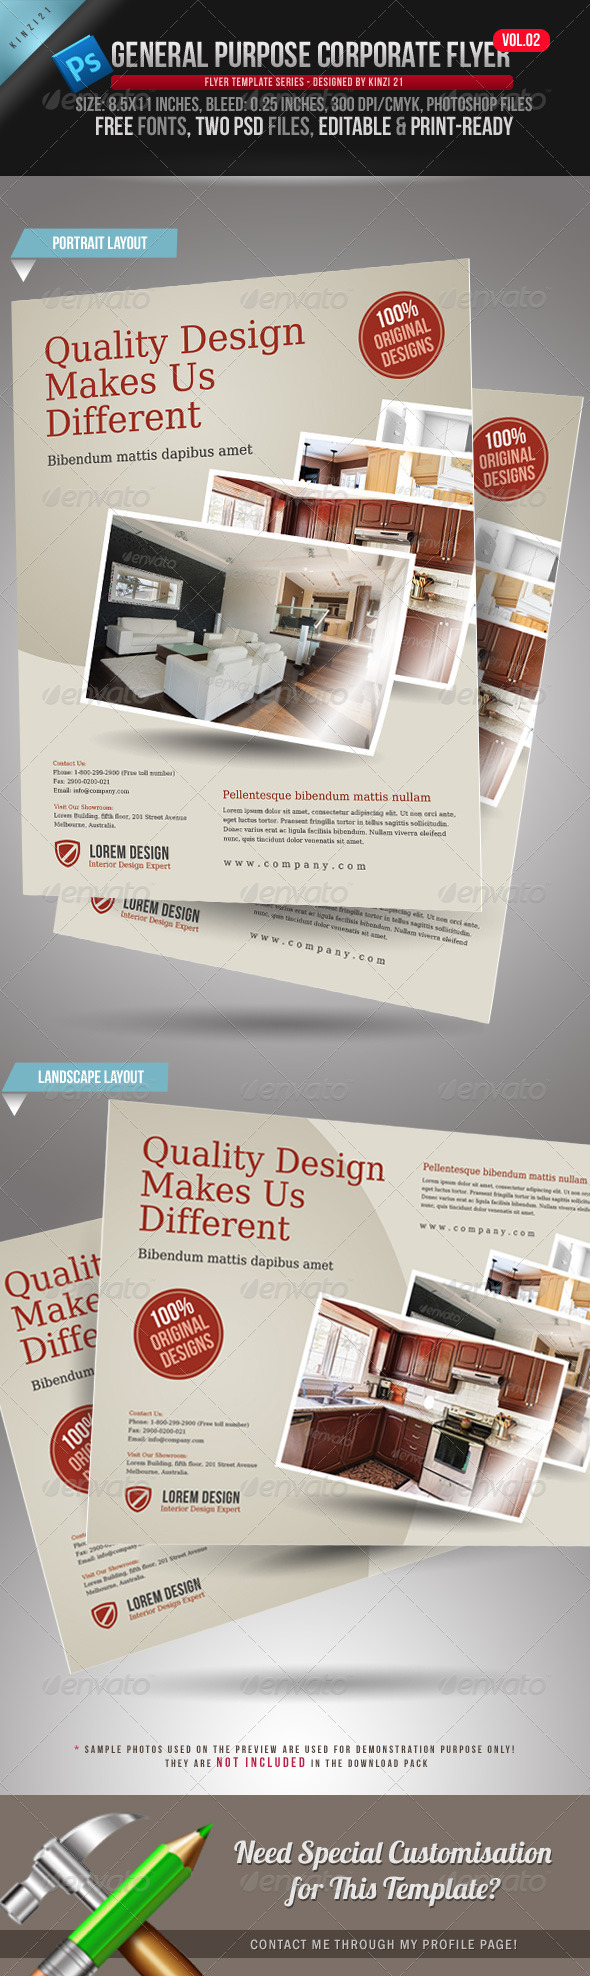 General Purpose Corporate Flyer Vol. 02 - Corporate Flyers